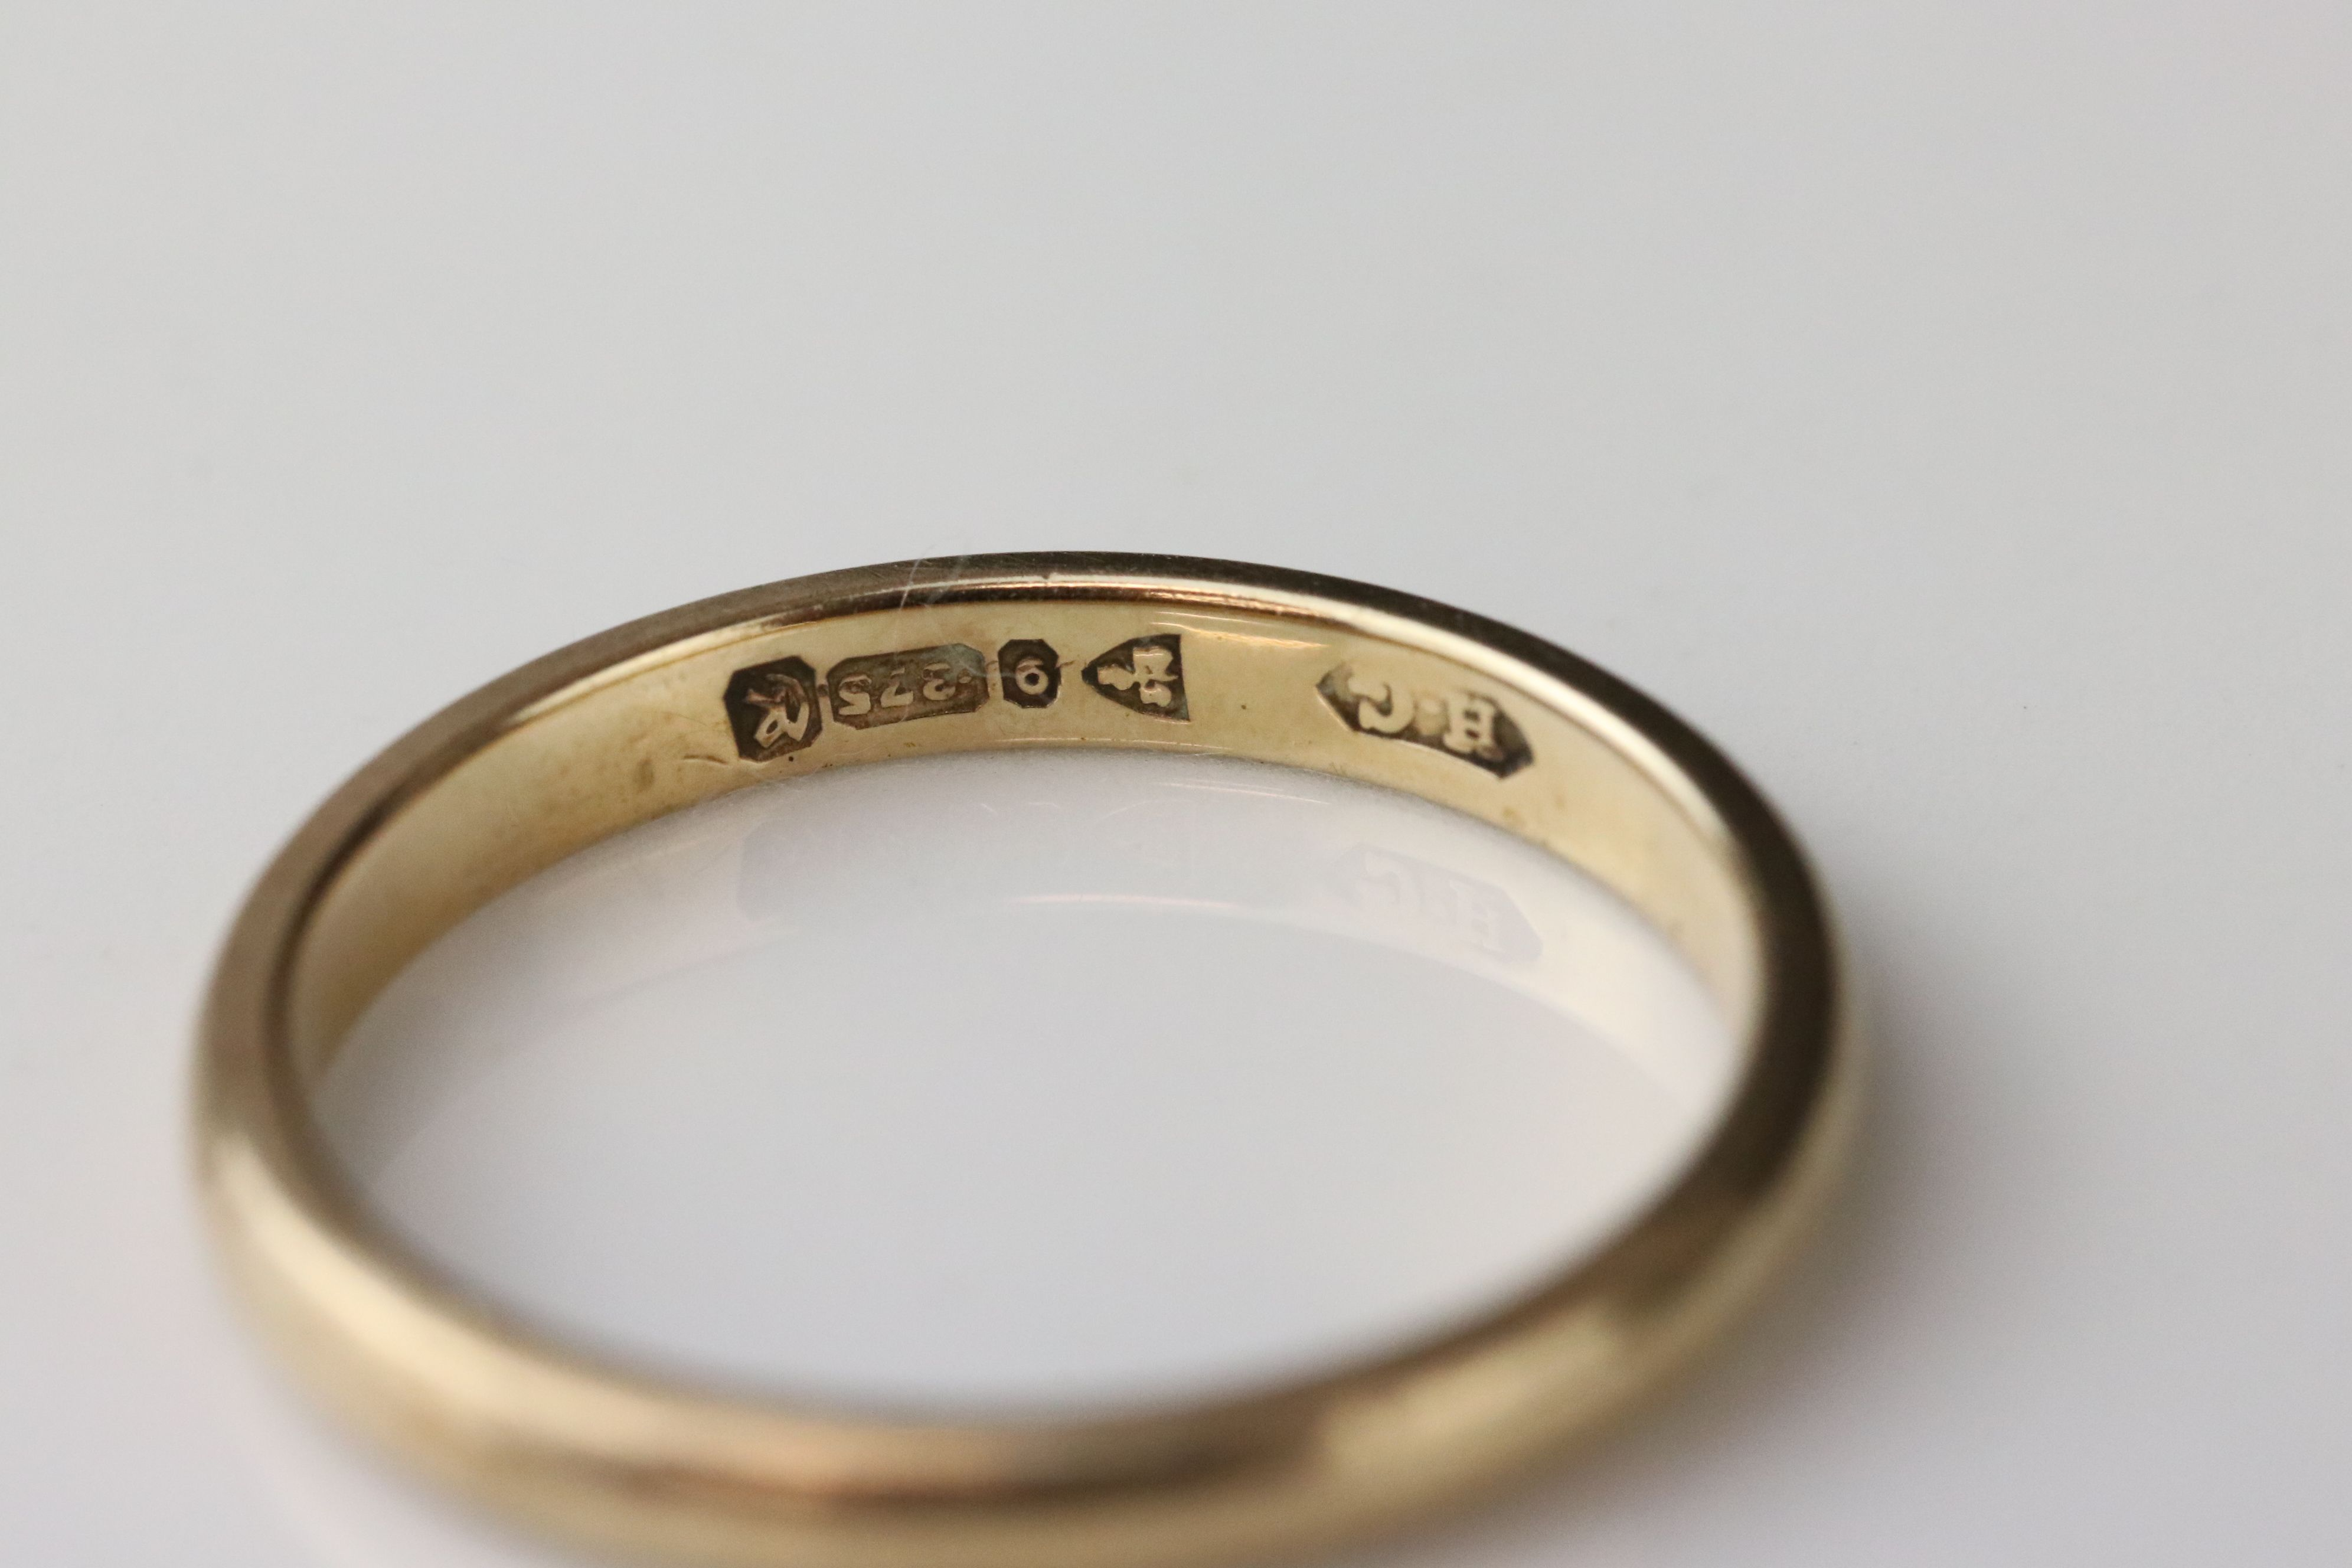 9ct yellow gold wedding band, width approx 2mm, ring size M½, together with a 9ct yellow gold - Image 5 of 5